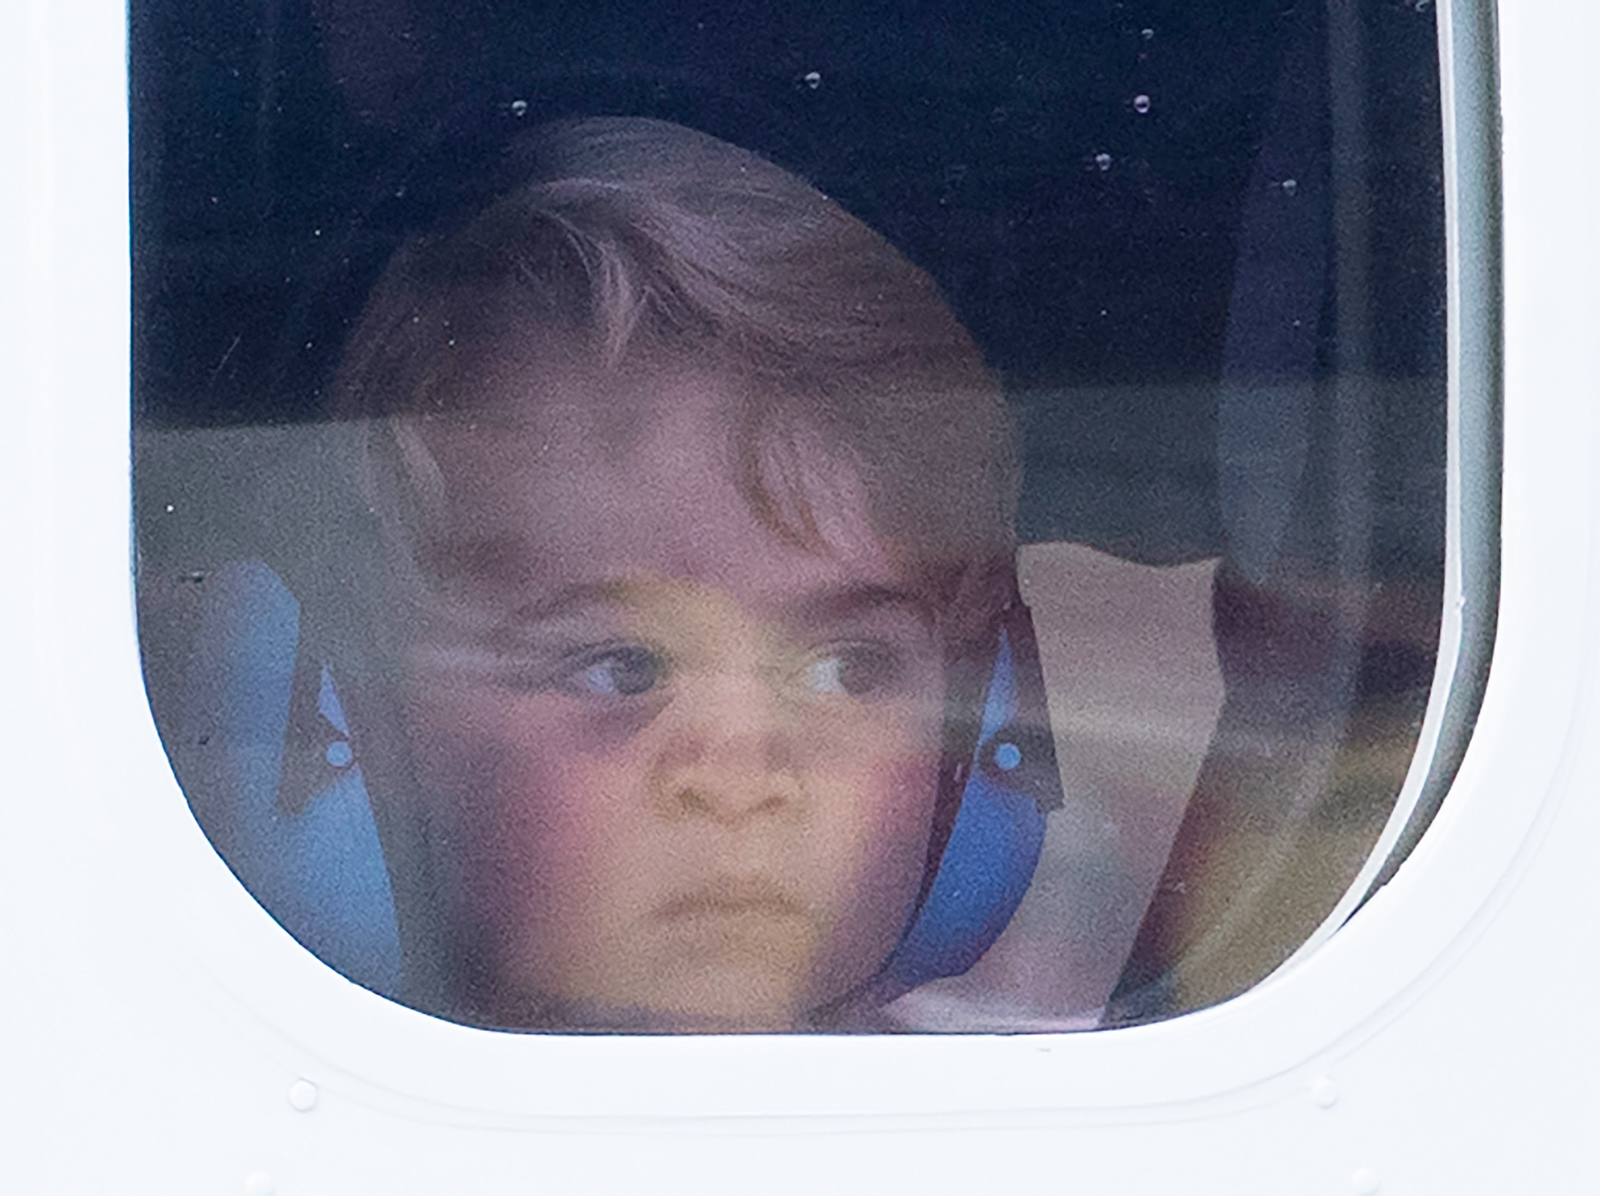 Prince George Creates a Meme?